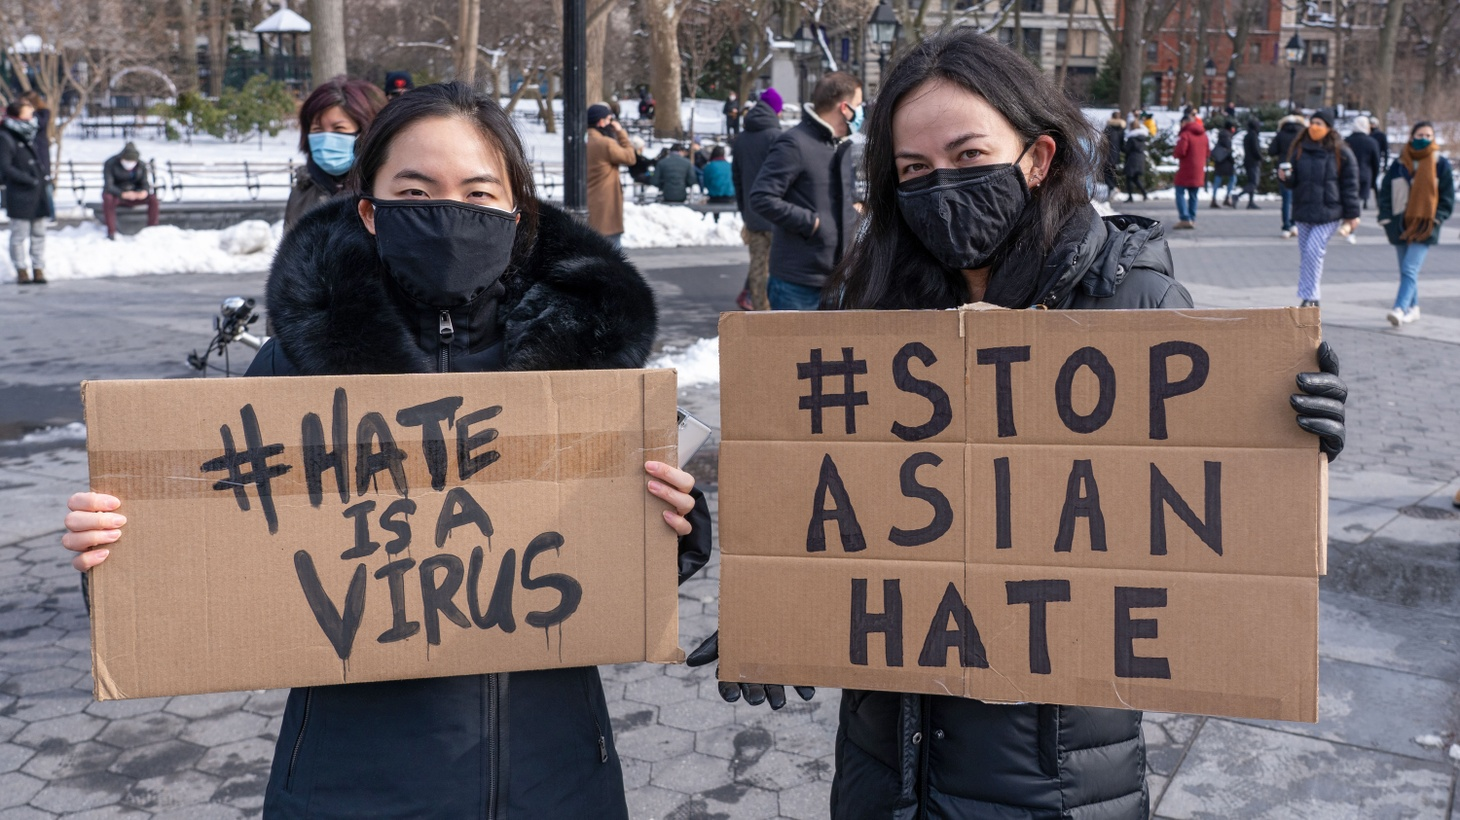 """Protestors hold placards that read """"hate is a virus"""" and """"stop Asian hate"""" during End The Violence Towards Asians rally in Washington Square Park. Since the start of the coronavirus pandemic, violence towards Asian Americans has increased at a much higher rate than previous years. The New York City Police Department (NYPD) reported a 1,900% increase in anti-Asian hate crimes in 2020."""